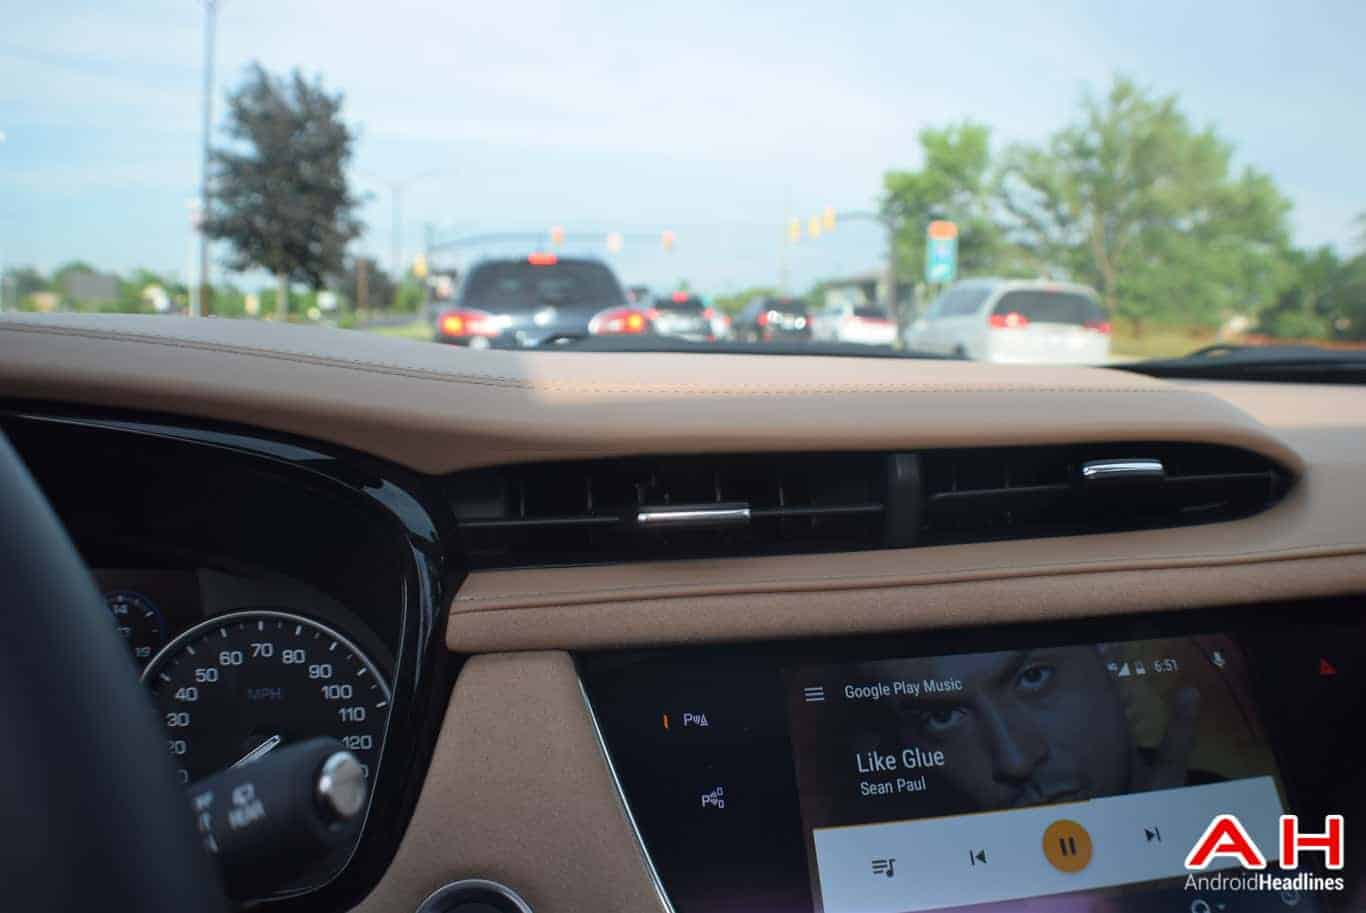 2017 Cadillac XT5 Android Auto Review AM AH 42